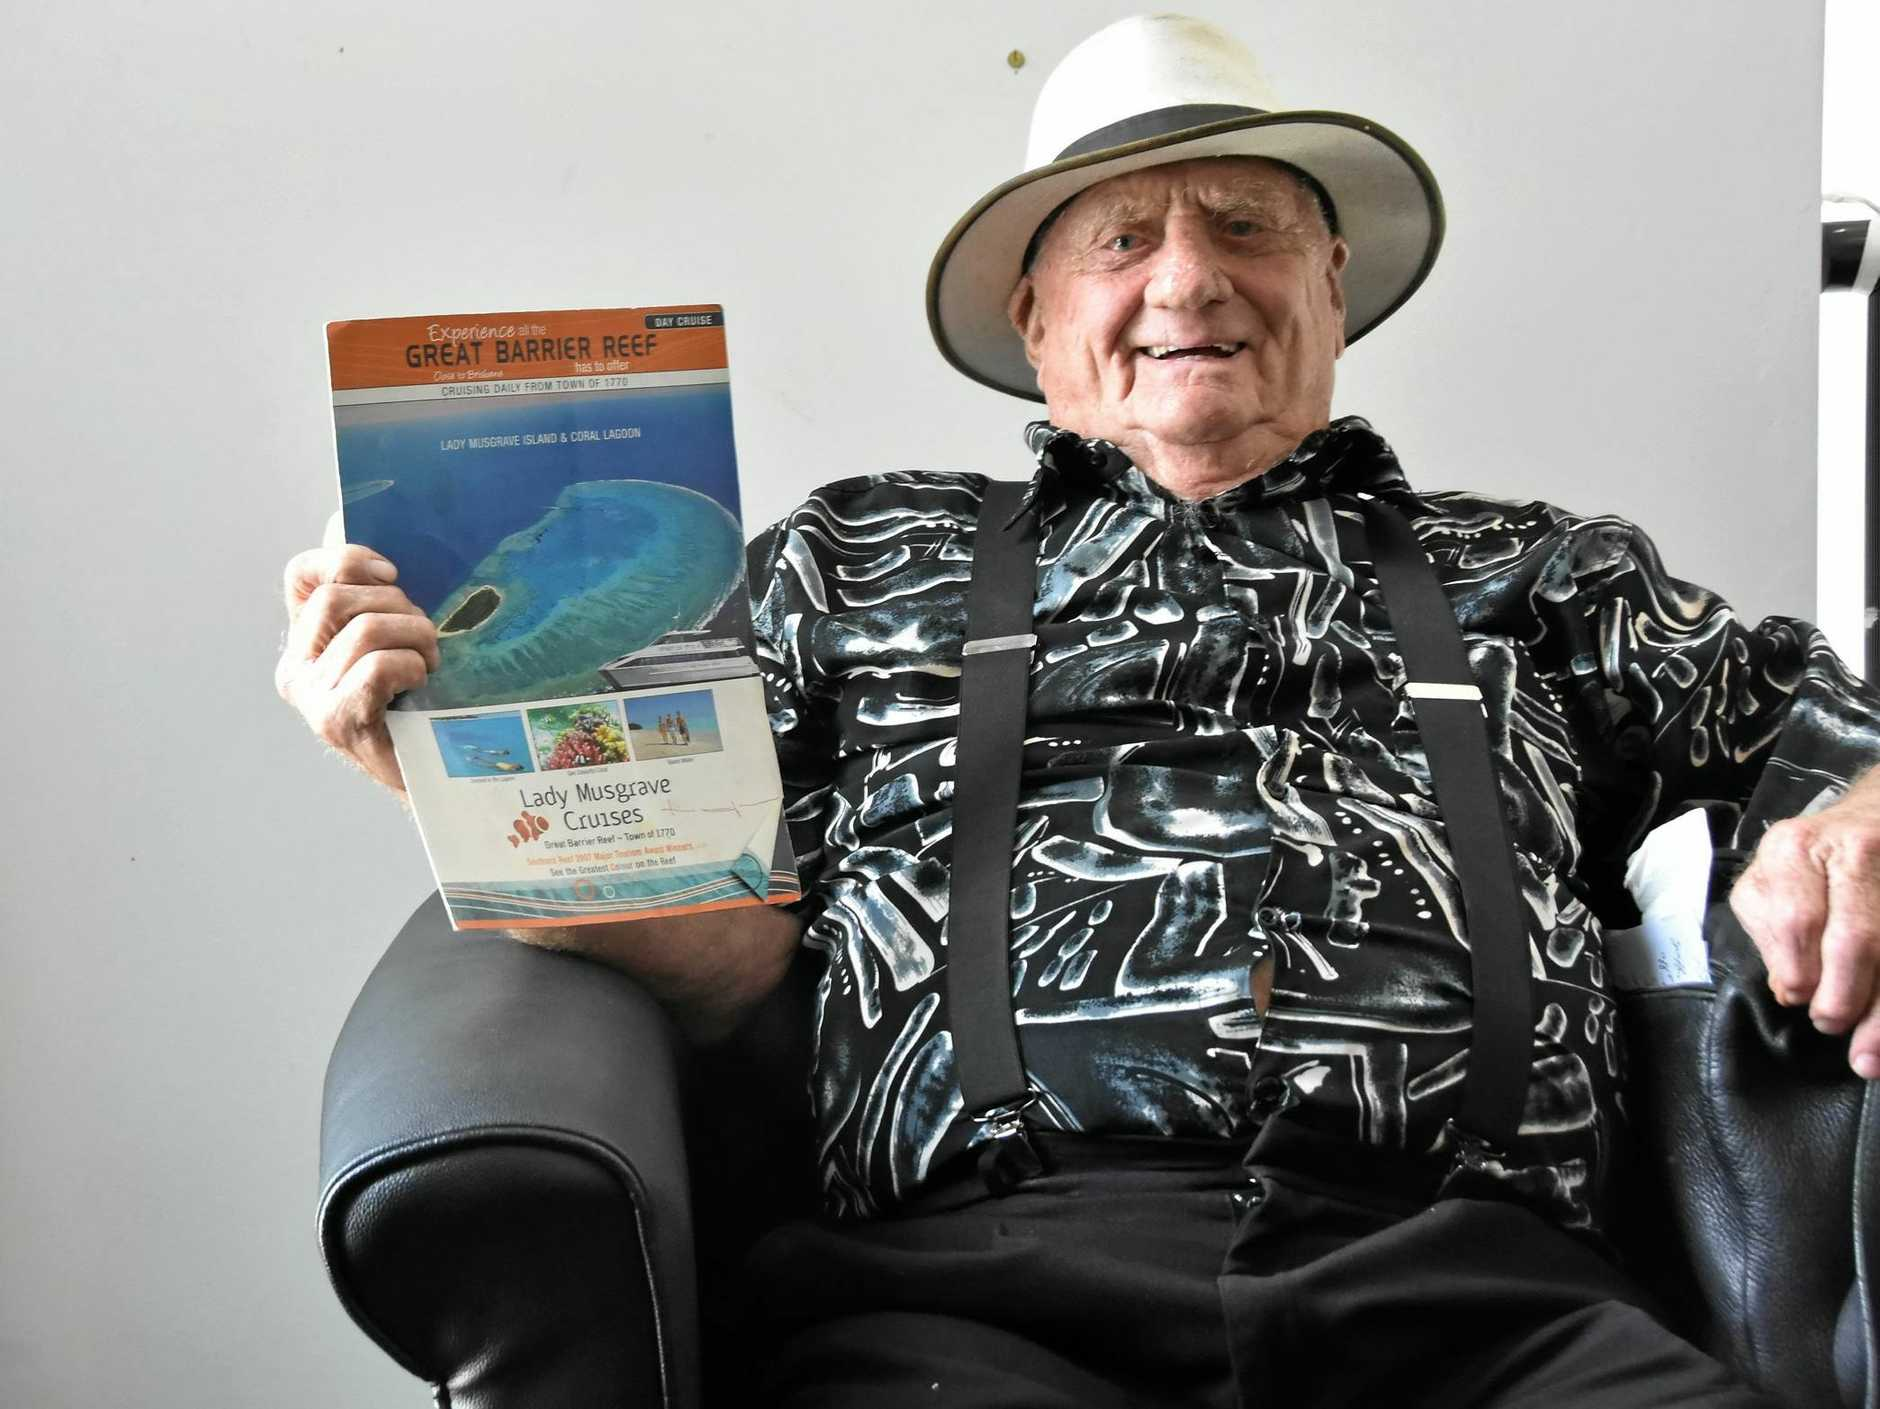 DETERMINED: John Clayton has fought hard to get Lady Musgrave Cruises back on track after a vessel sinking.